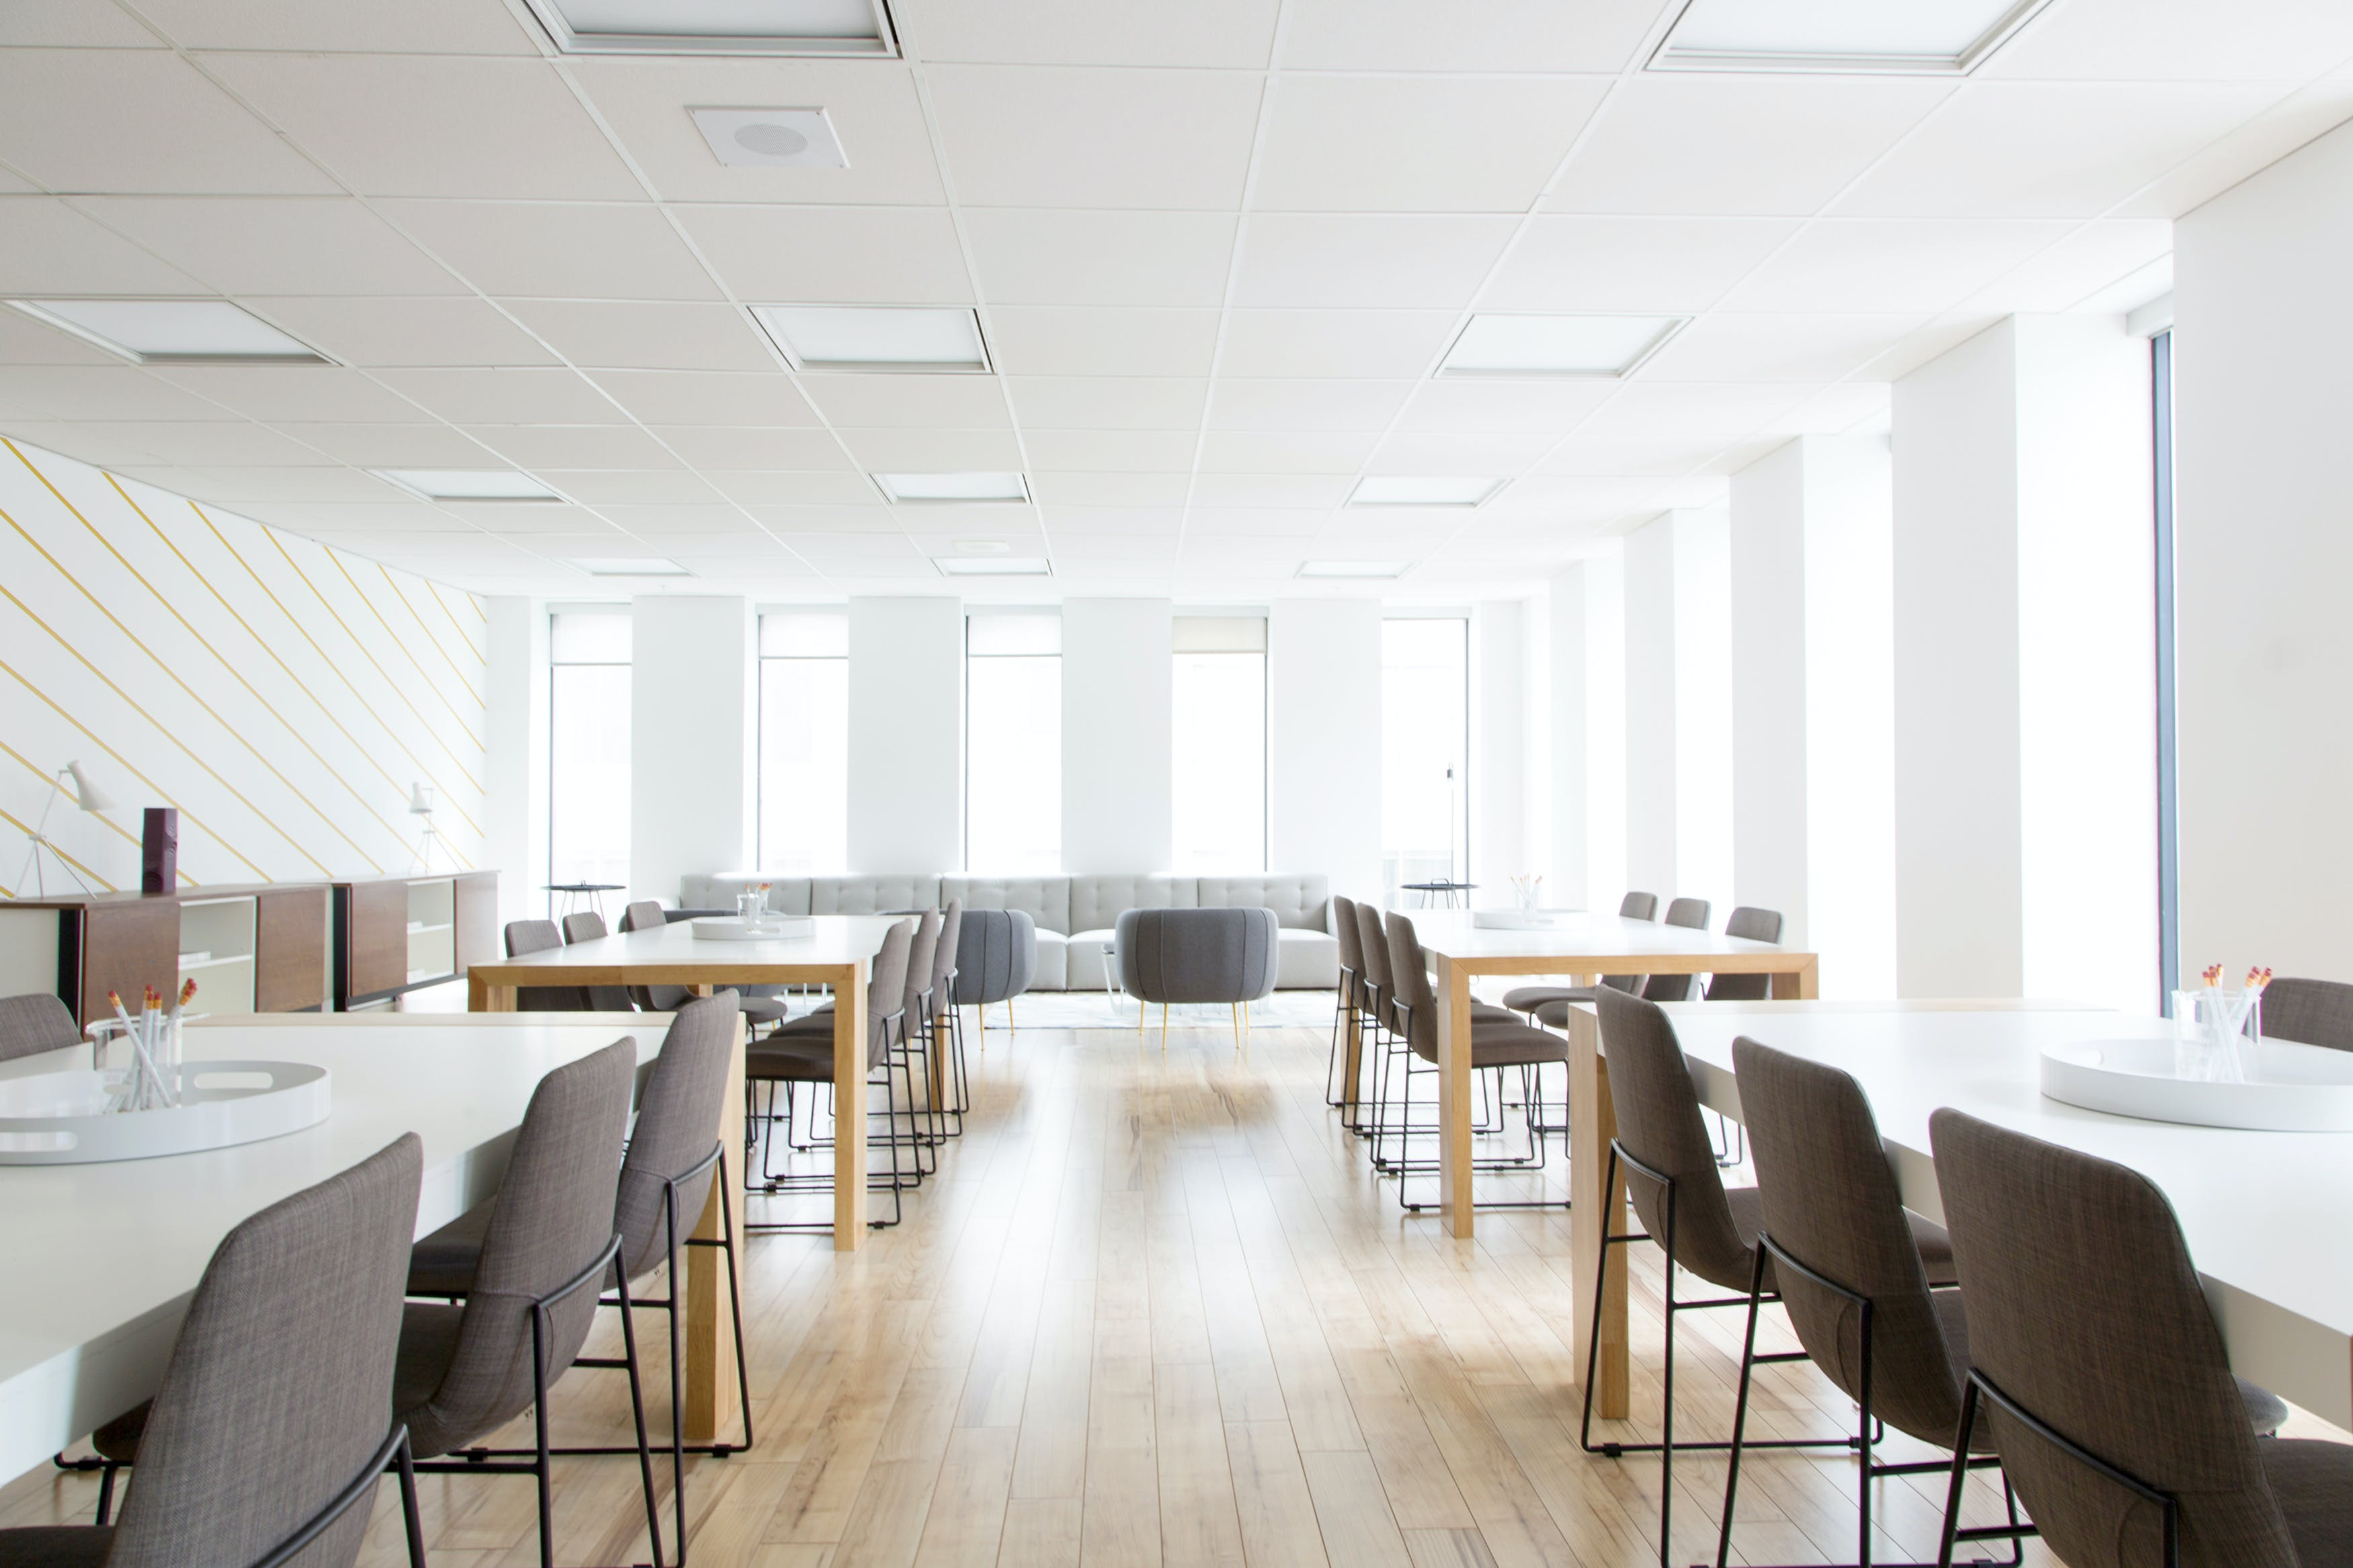 launch_event space at 110 Yonge Street